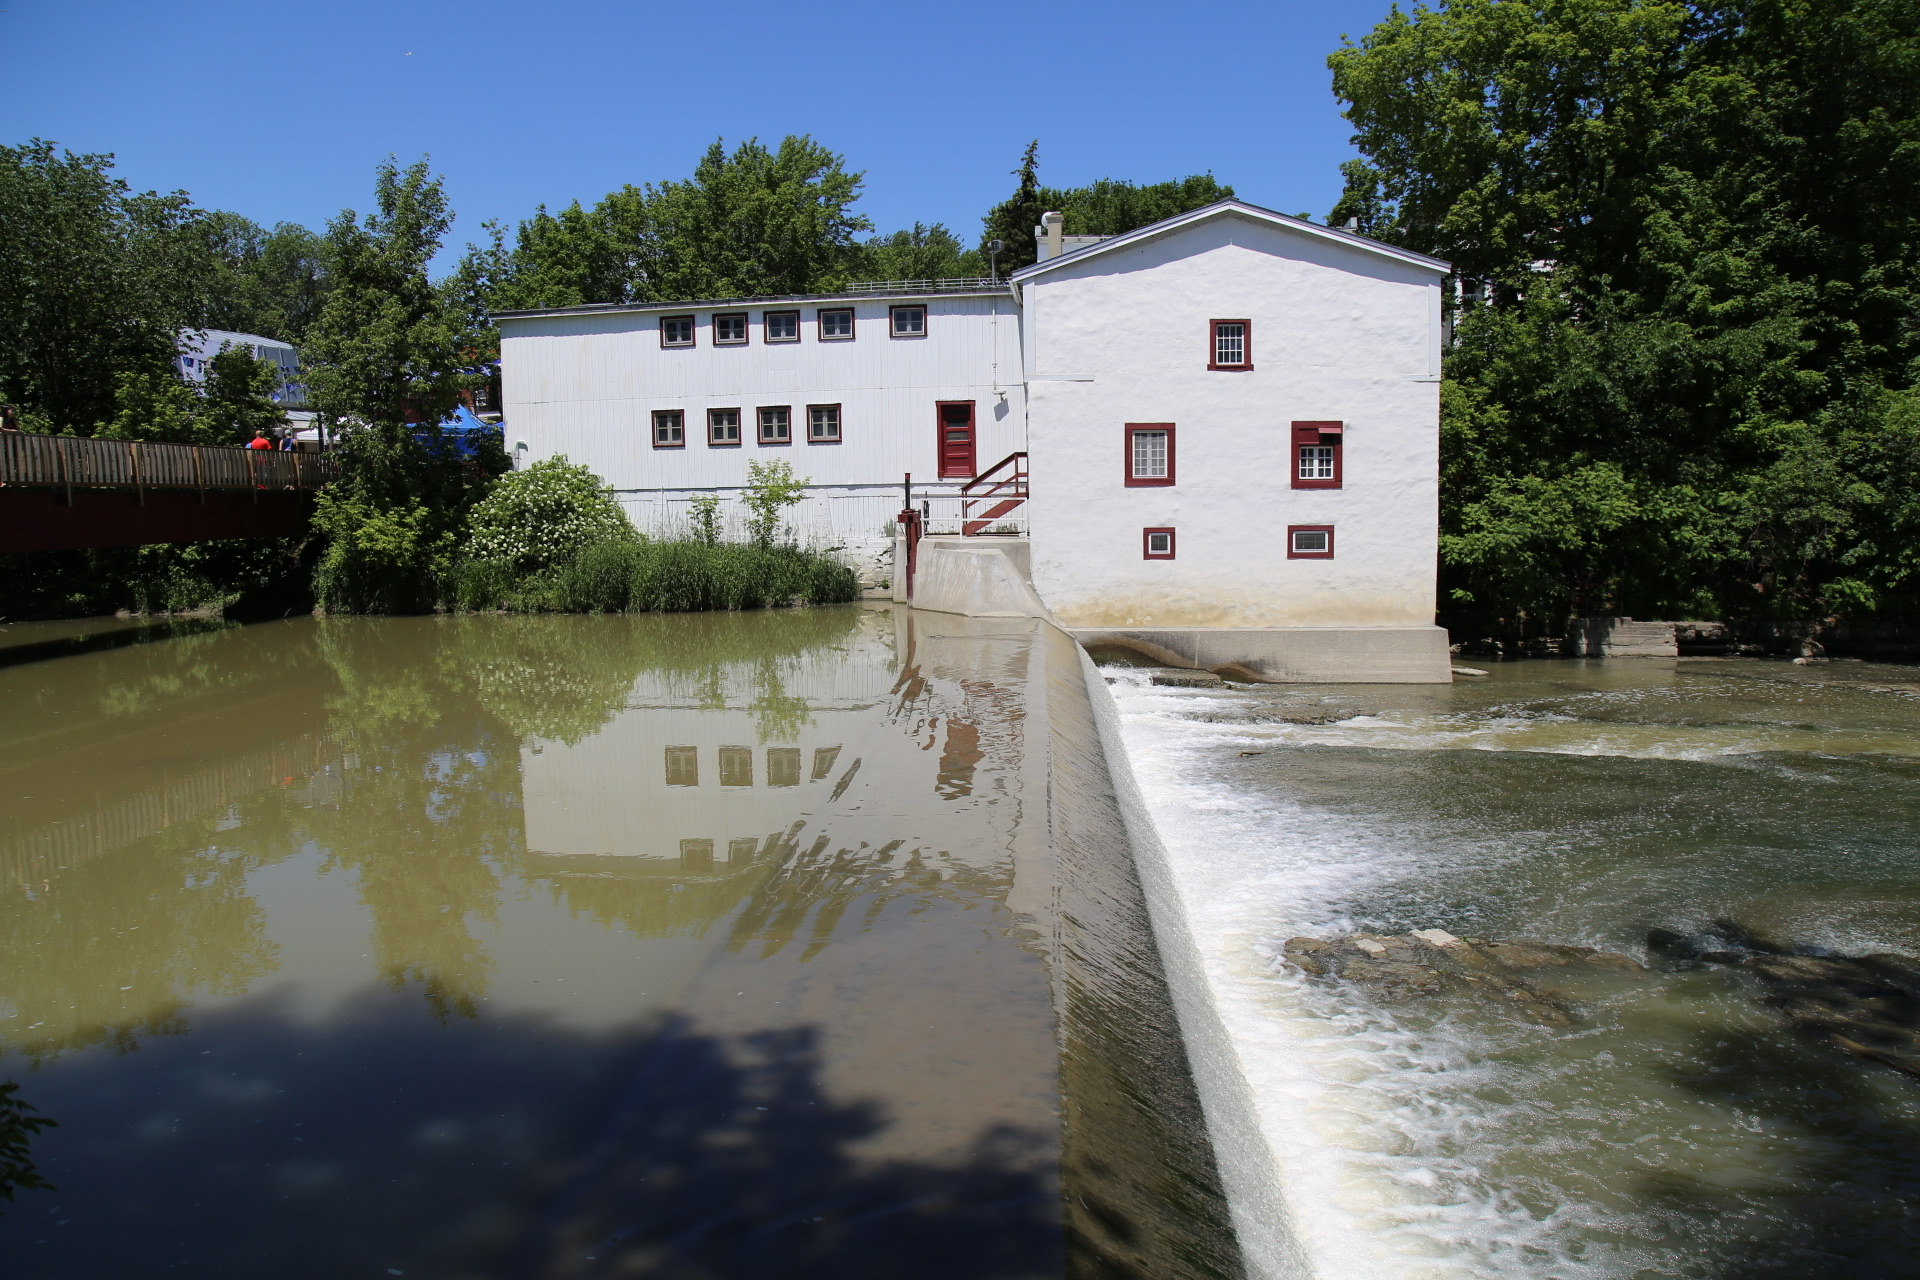 A picture of the moulin Legare the oldest functional water powered mill in North America